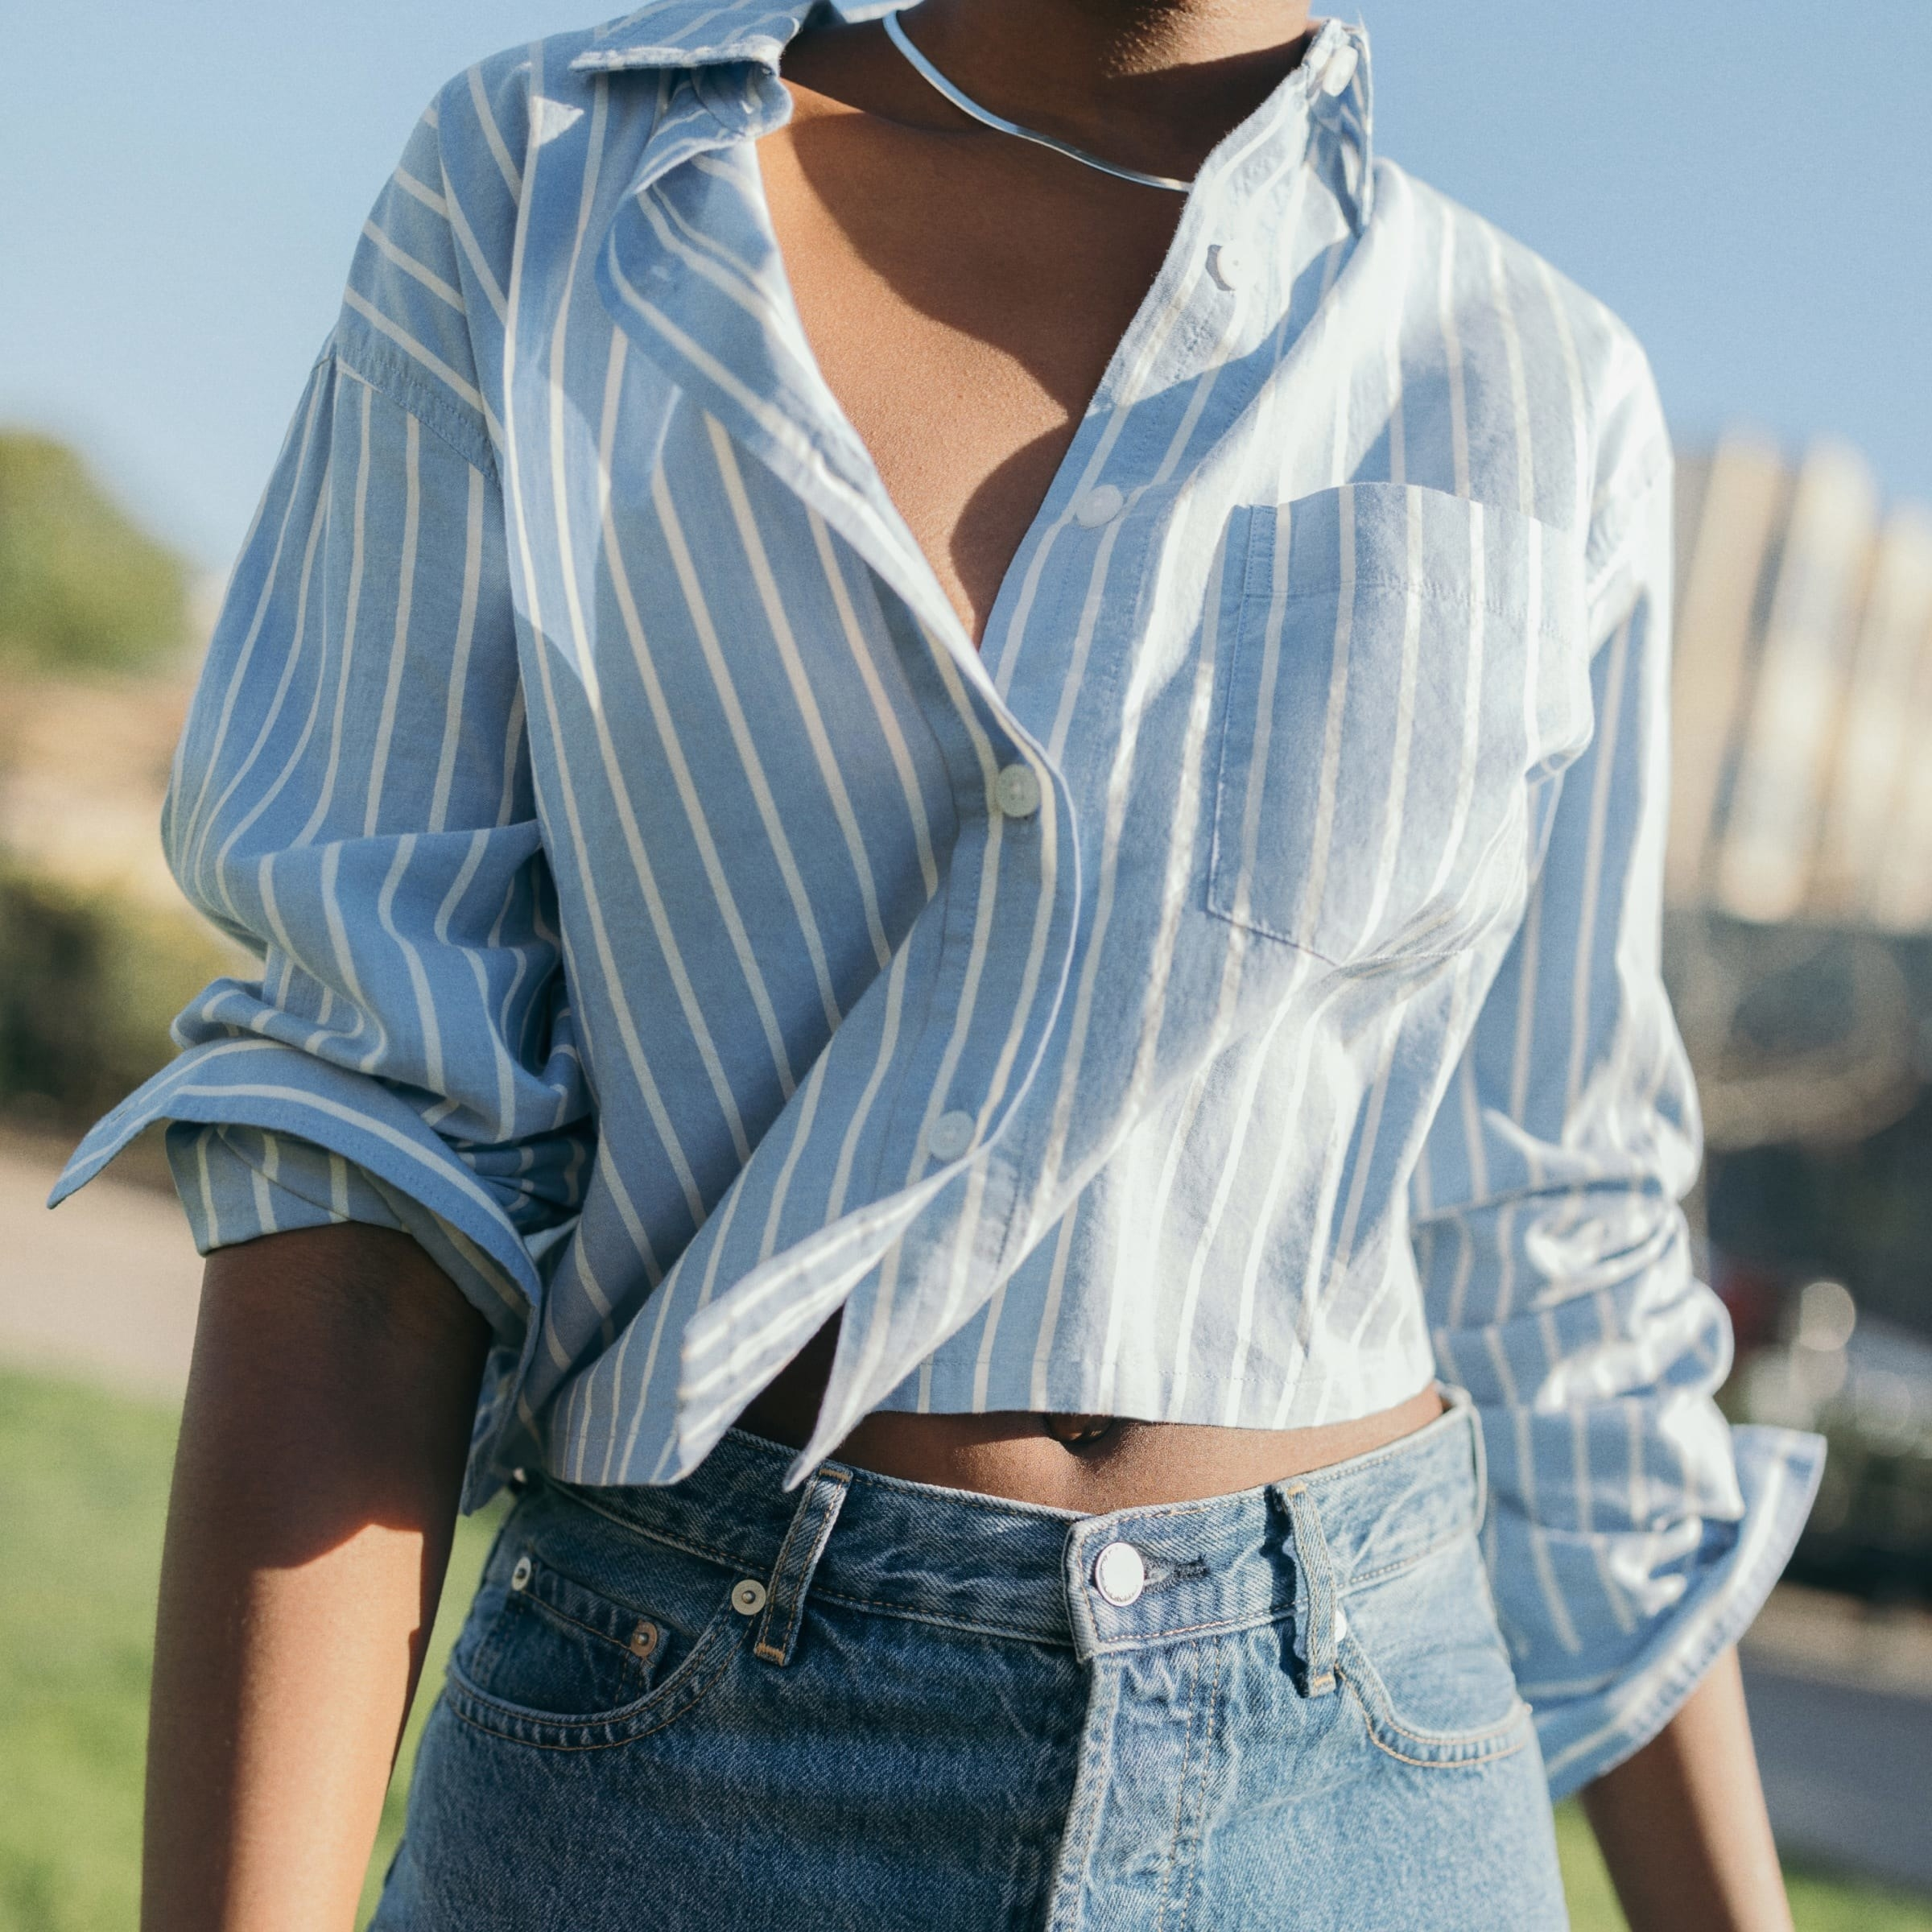 Model wearing the light blue and white vertical-striped shirt